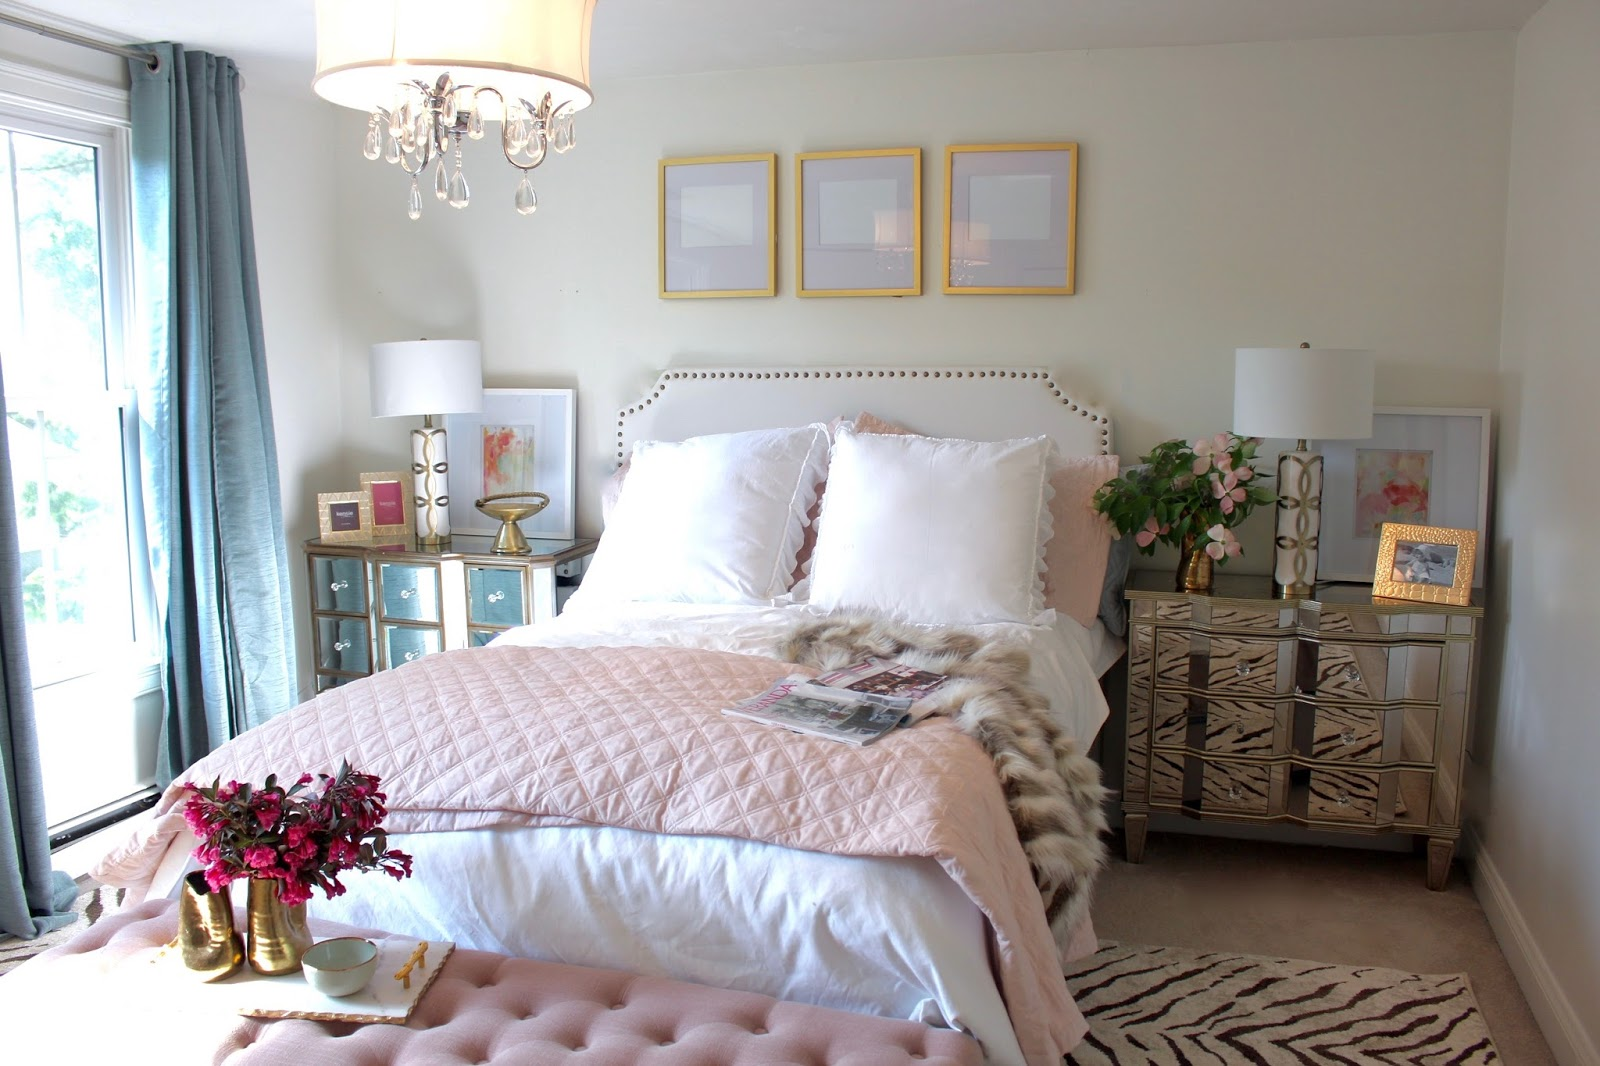 ROOM REVEAL: Pink and Gold Feminine Bedroom (My Guest Room) With ...